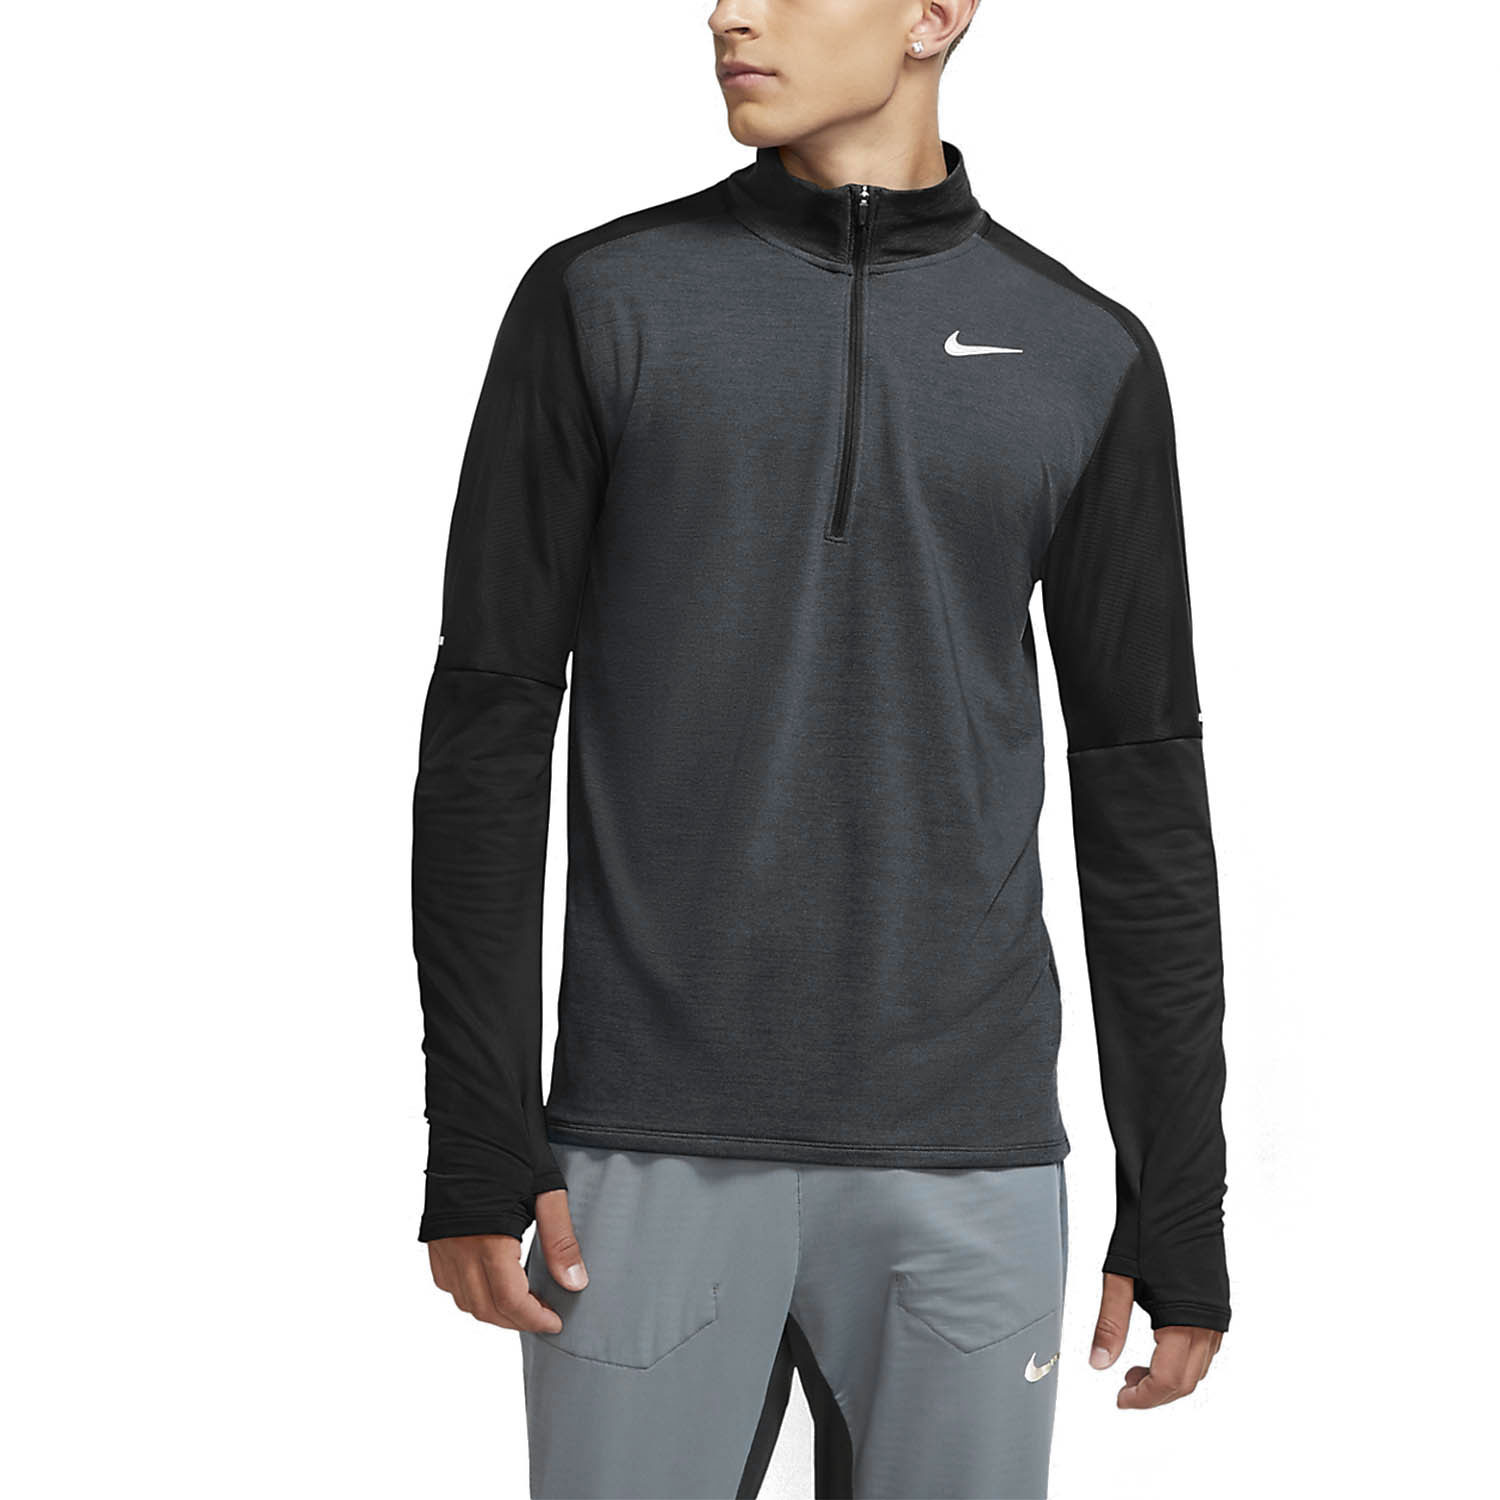 Nike Classic Element Shirt - Dark Smoke Grey/Black/Reflective Silver